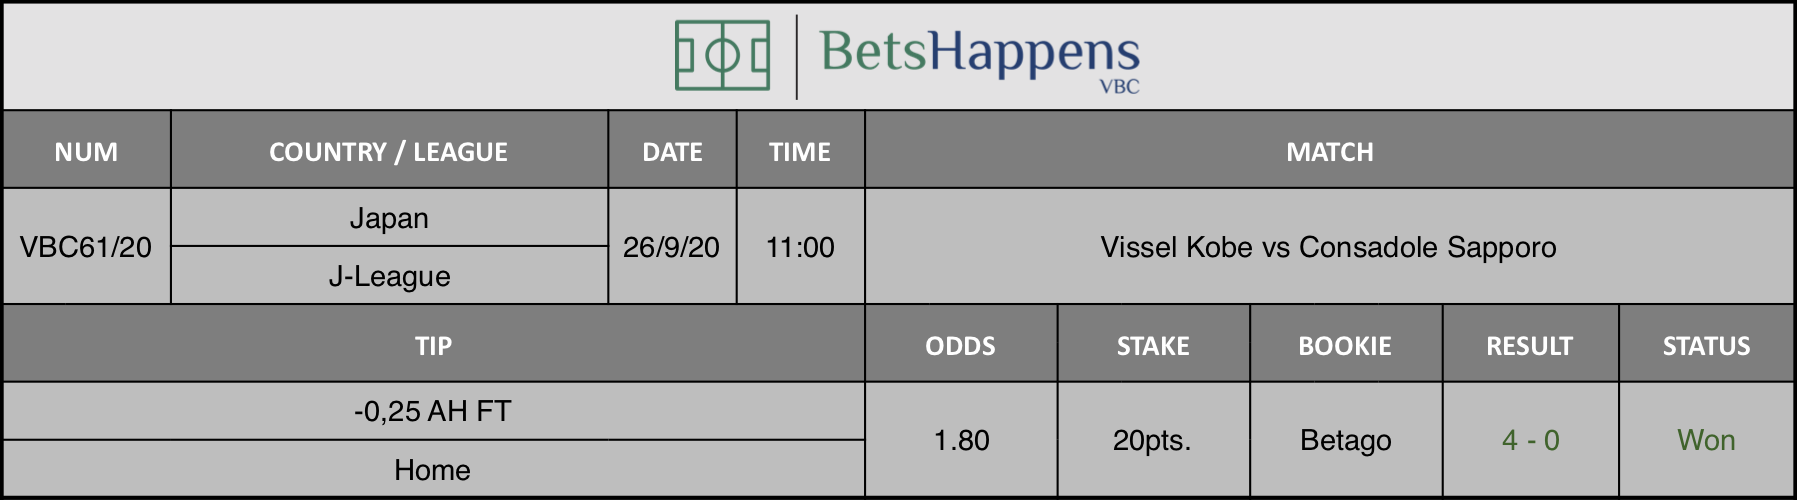 Results of our advice for the Vissel Kobe vs Consadole Sapporo match in which -0.25 AH F / T Home is recommended.